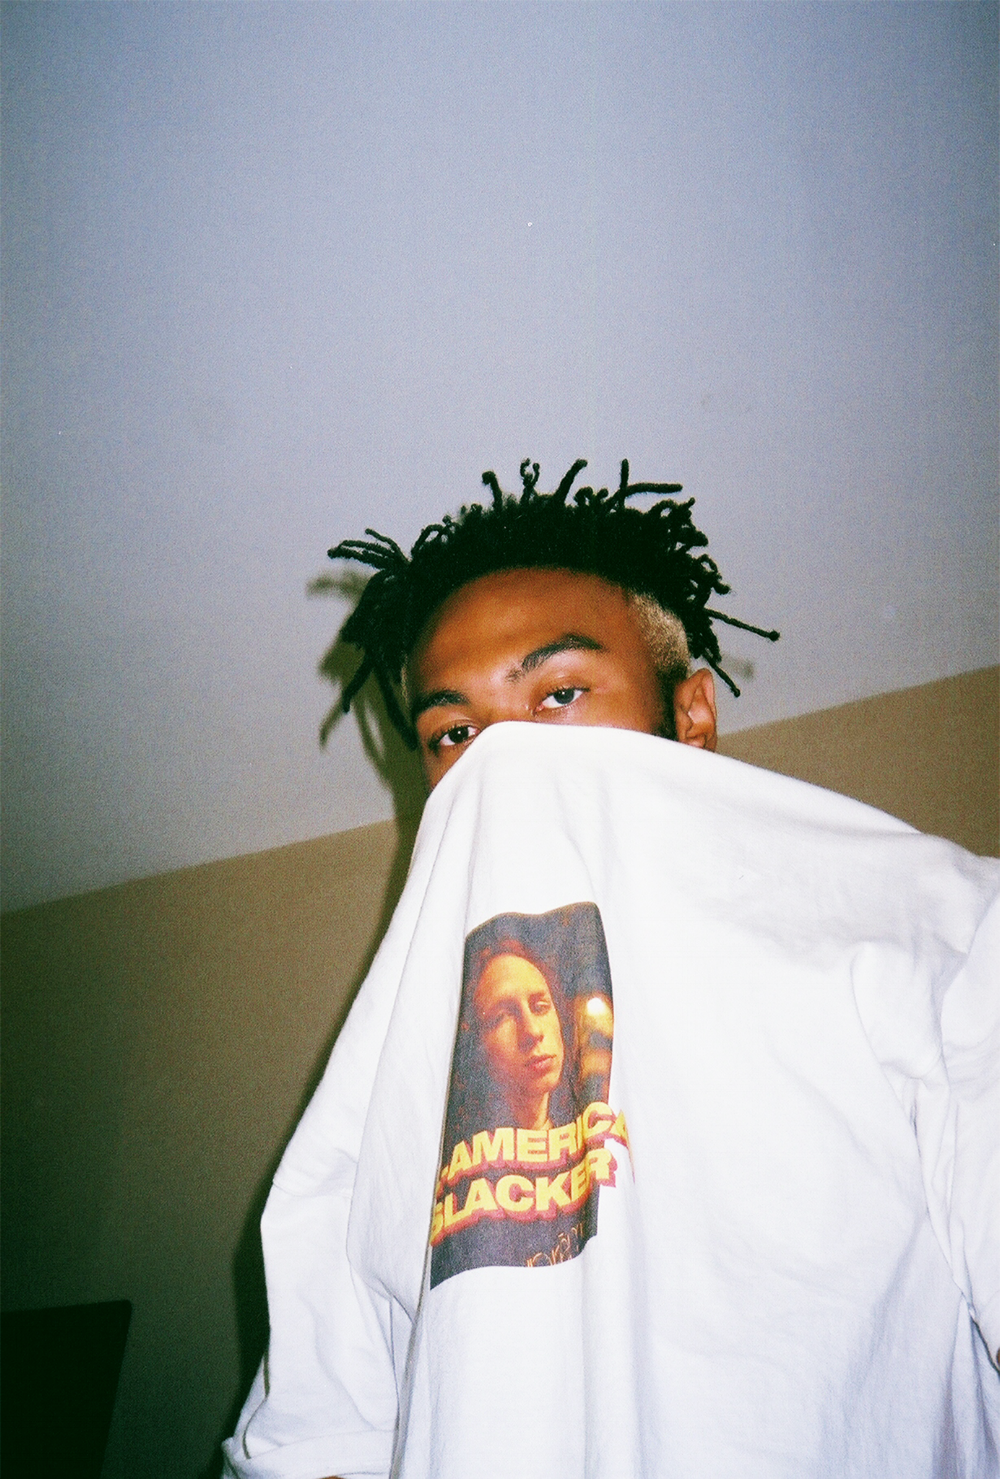 Kevin Abstract - photo credit to: Luke Baker